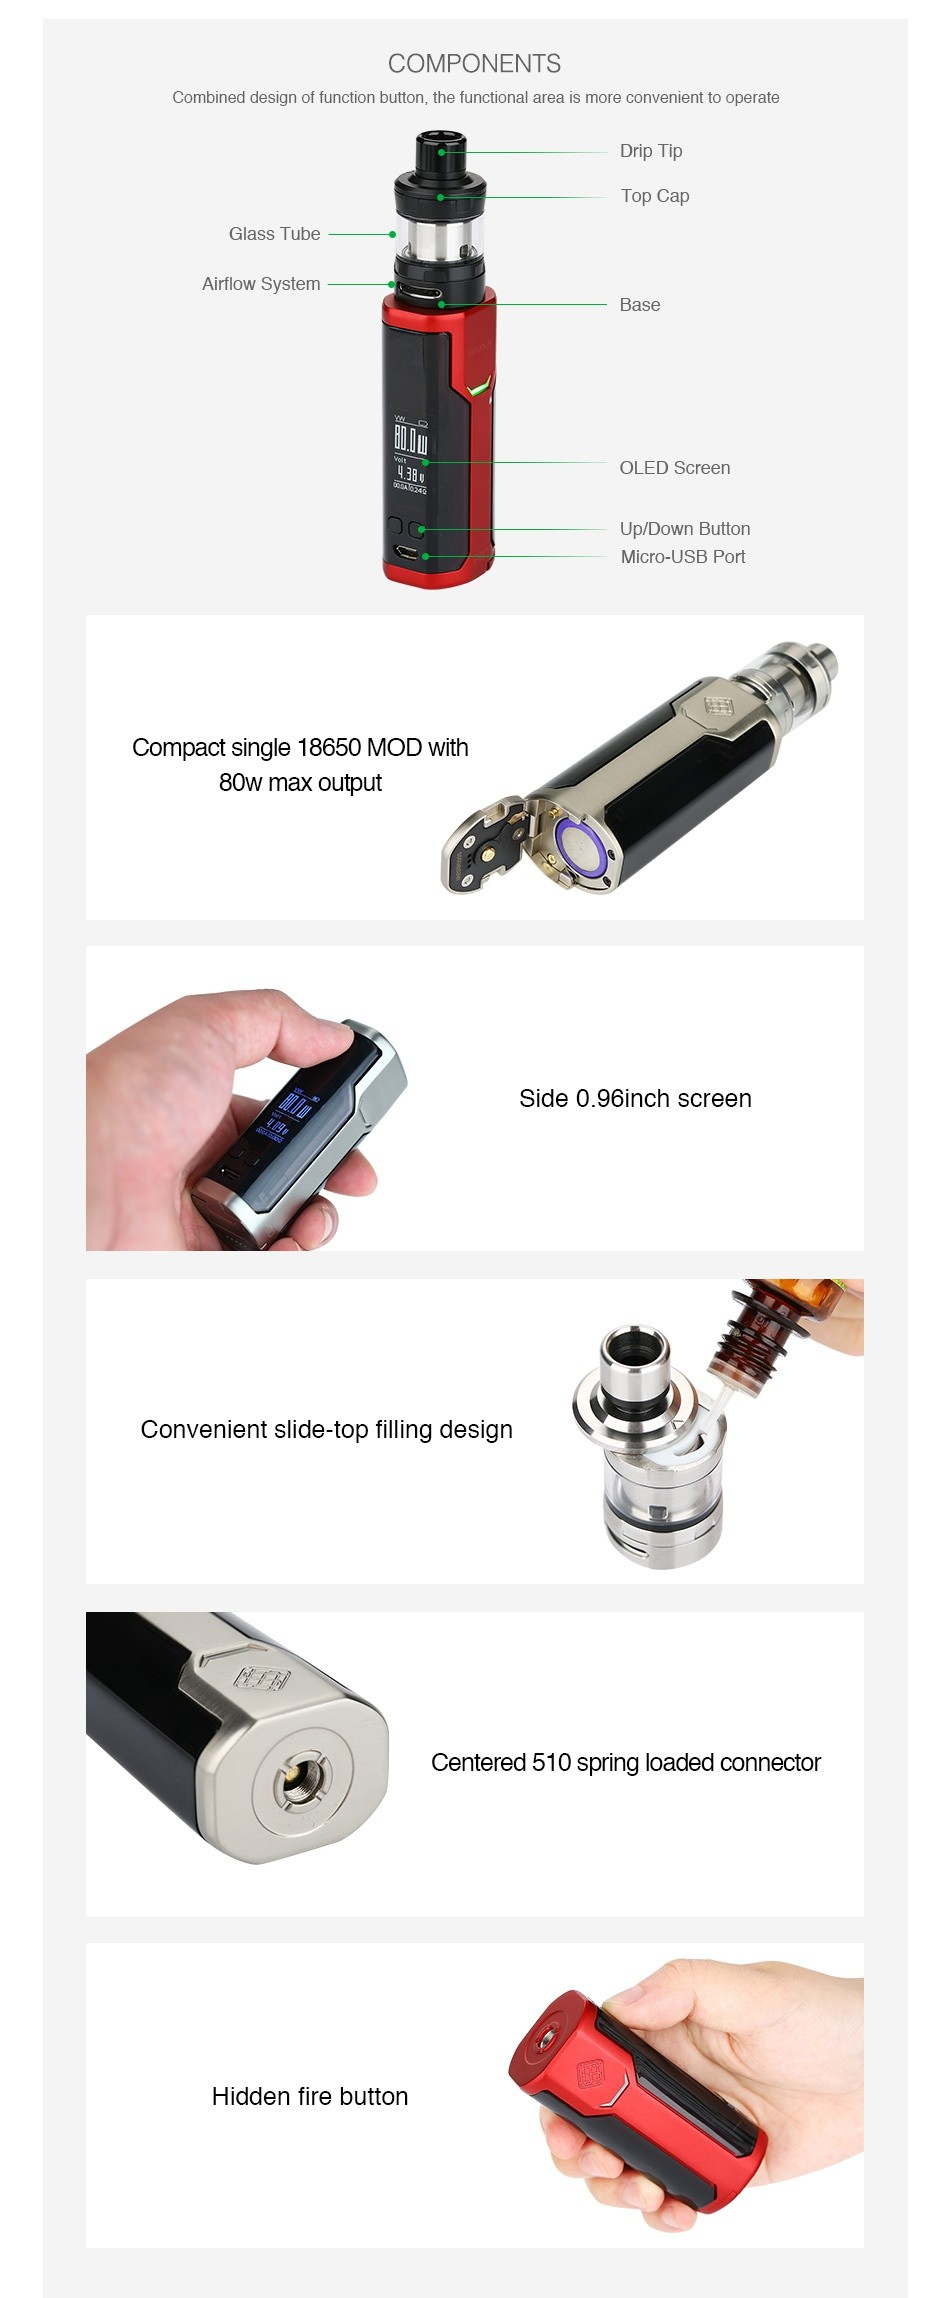 WISMEC SINUOUS P80 with Elabo Mini TC Kit COMPONENTS Combined design of function button  the functional area is more convenient to operate Drip Tip Glass tube Airflow Systcm Base OLED Scrccn Up Down Button Micro USB Port Compact single 18650 MOD with 80w max output Sideo grinch screen Convenient slide top filling design Centered 510 spring loaded connector Iden fire button